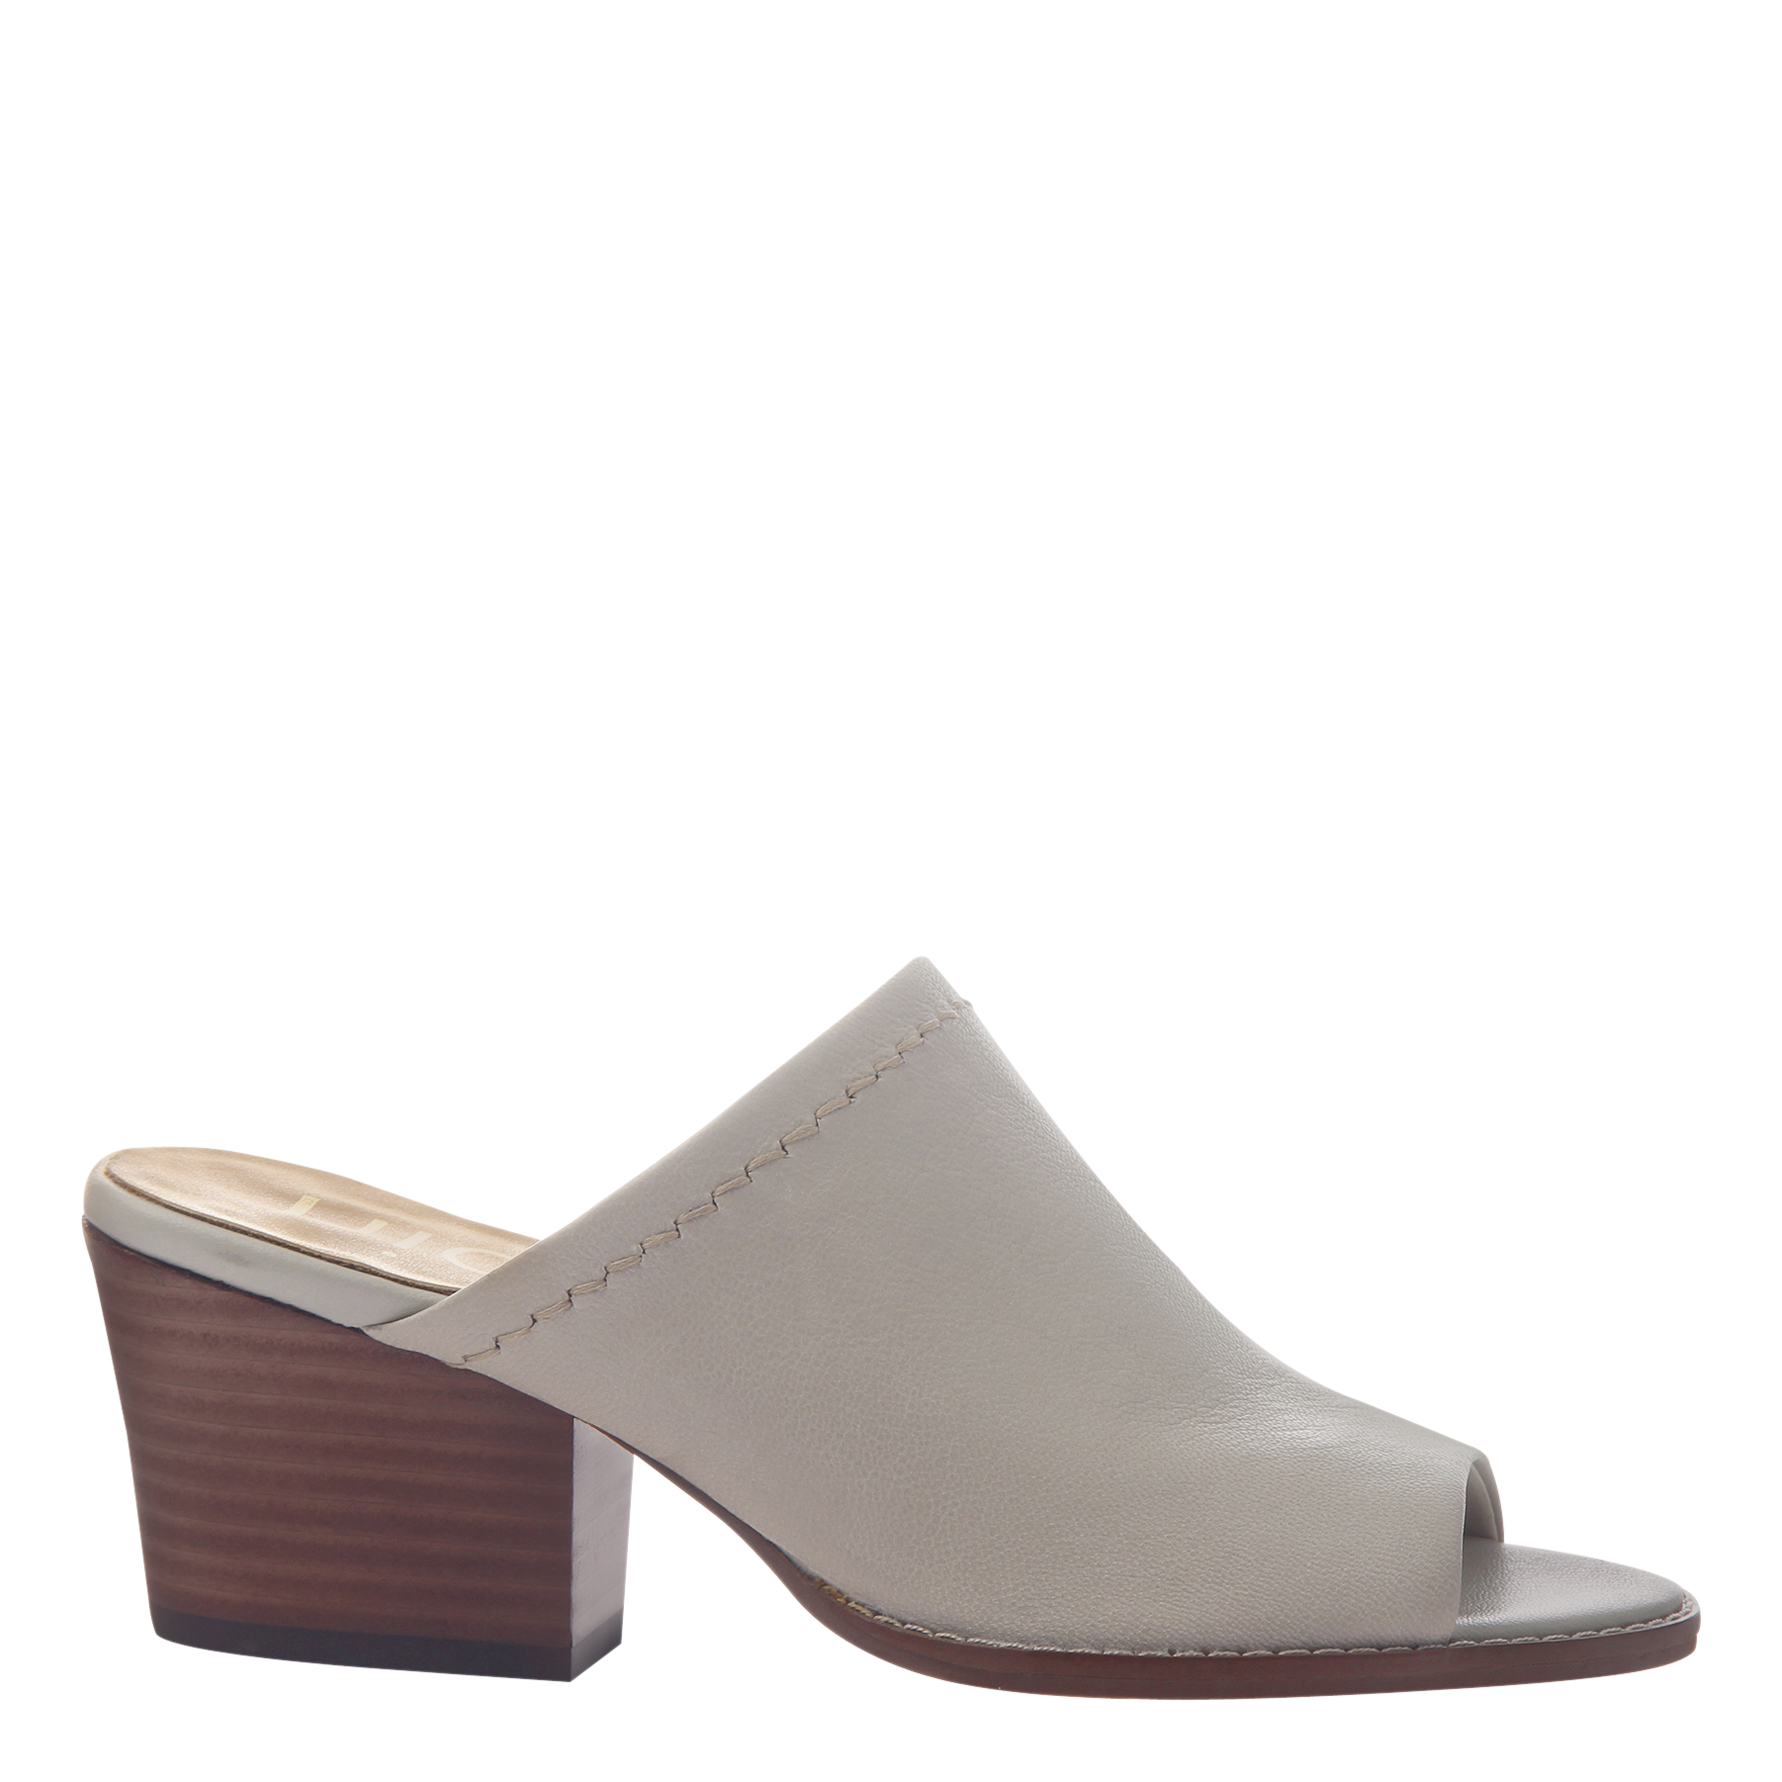 Womens mule slide Carolina in steel side view